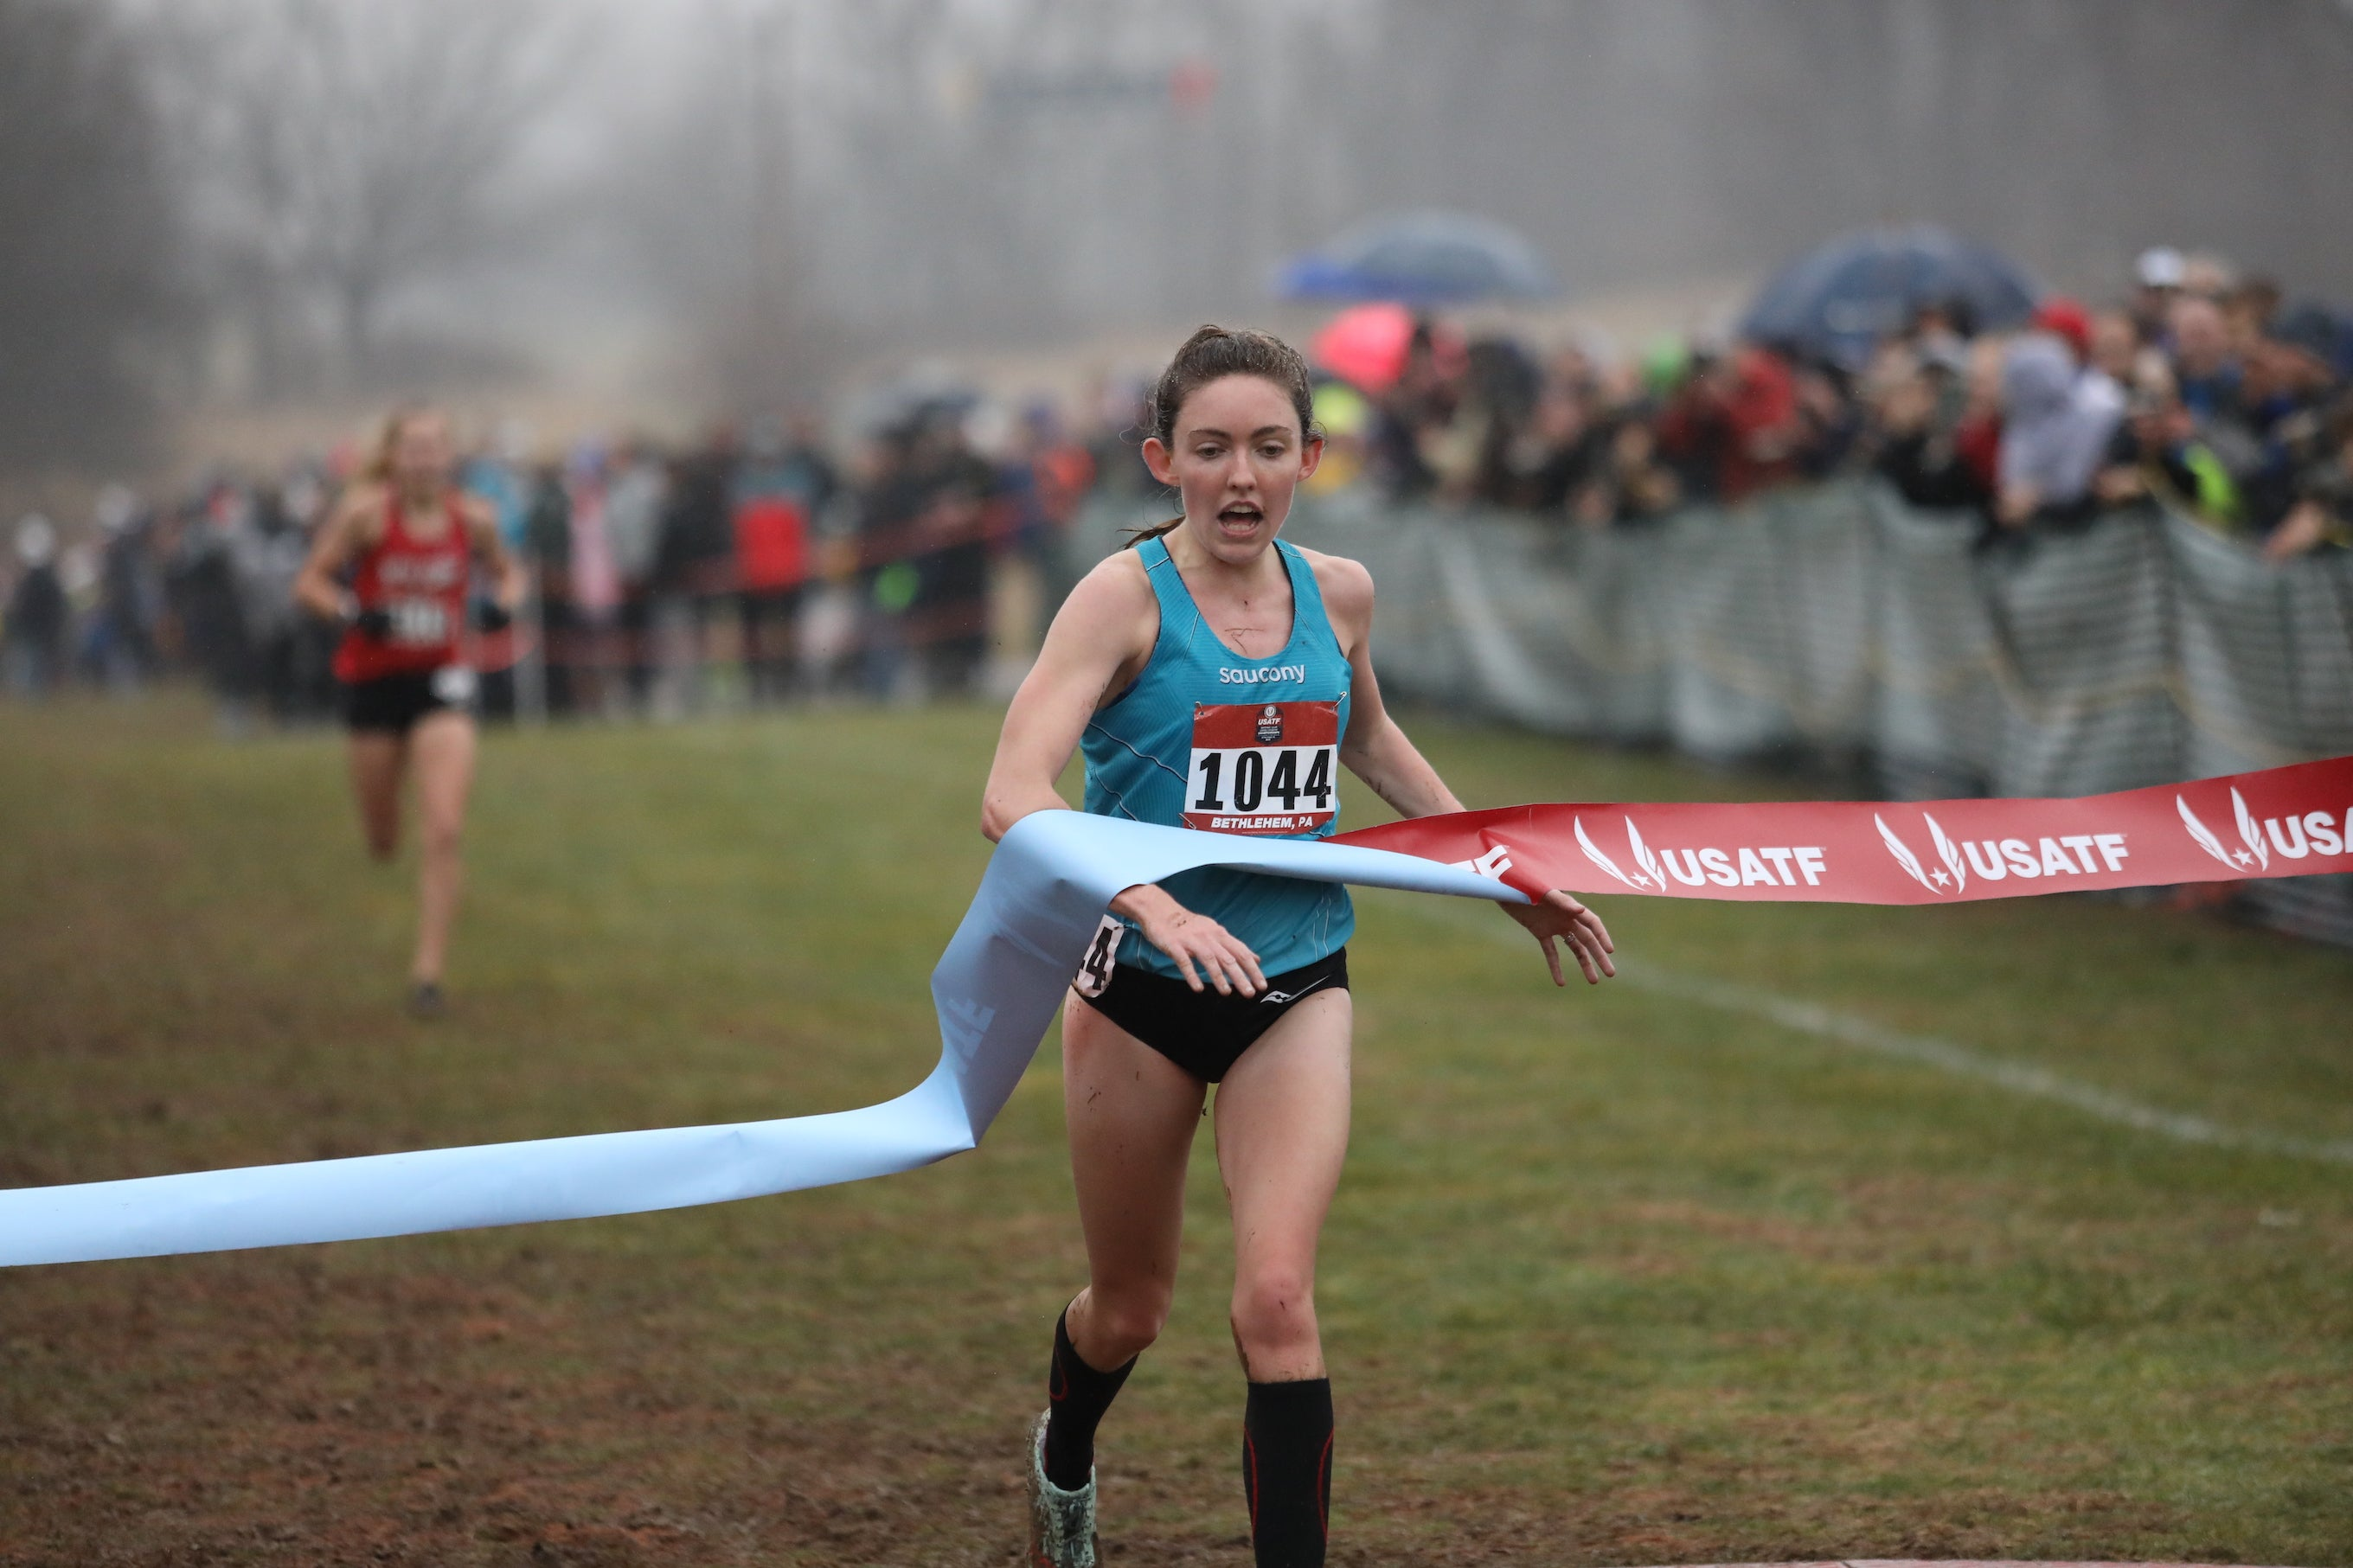 The 2019 USATF Club Cross Country open women's champion Aisling Cuffe, 26, breaks the tape at Lehigh University, representing Saucony.